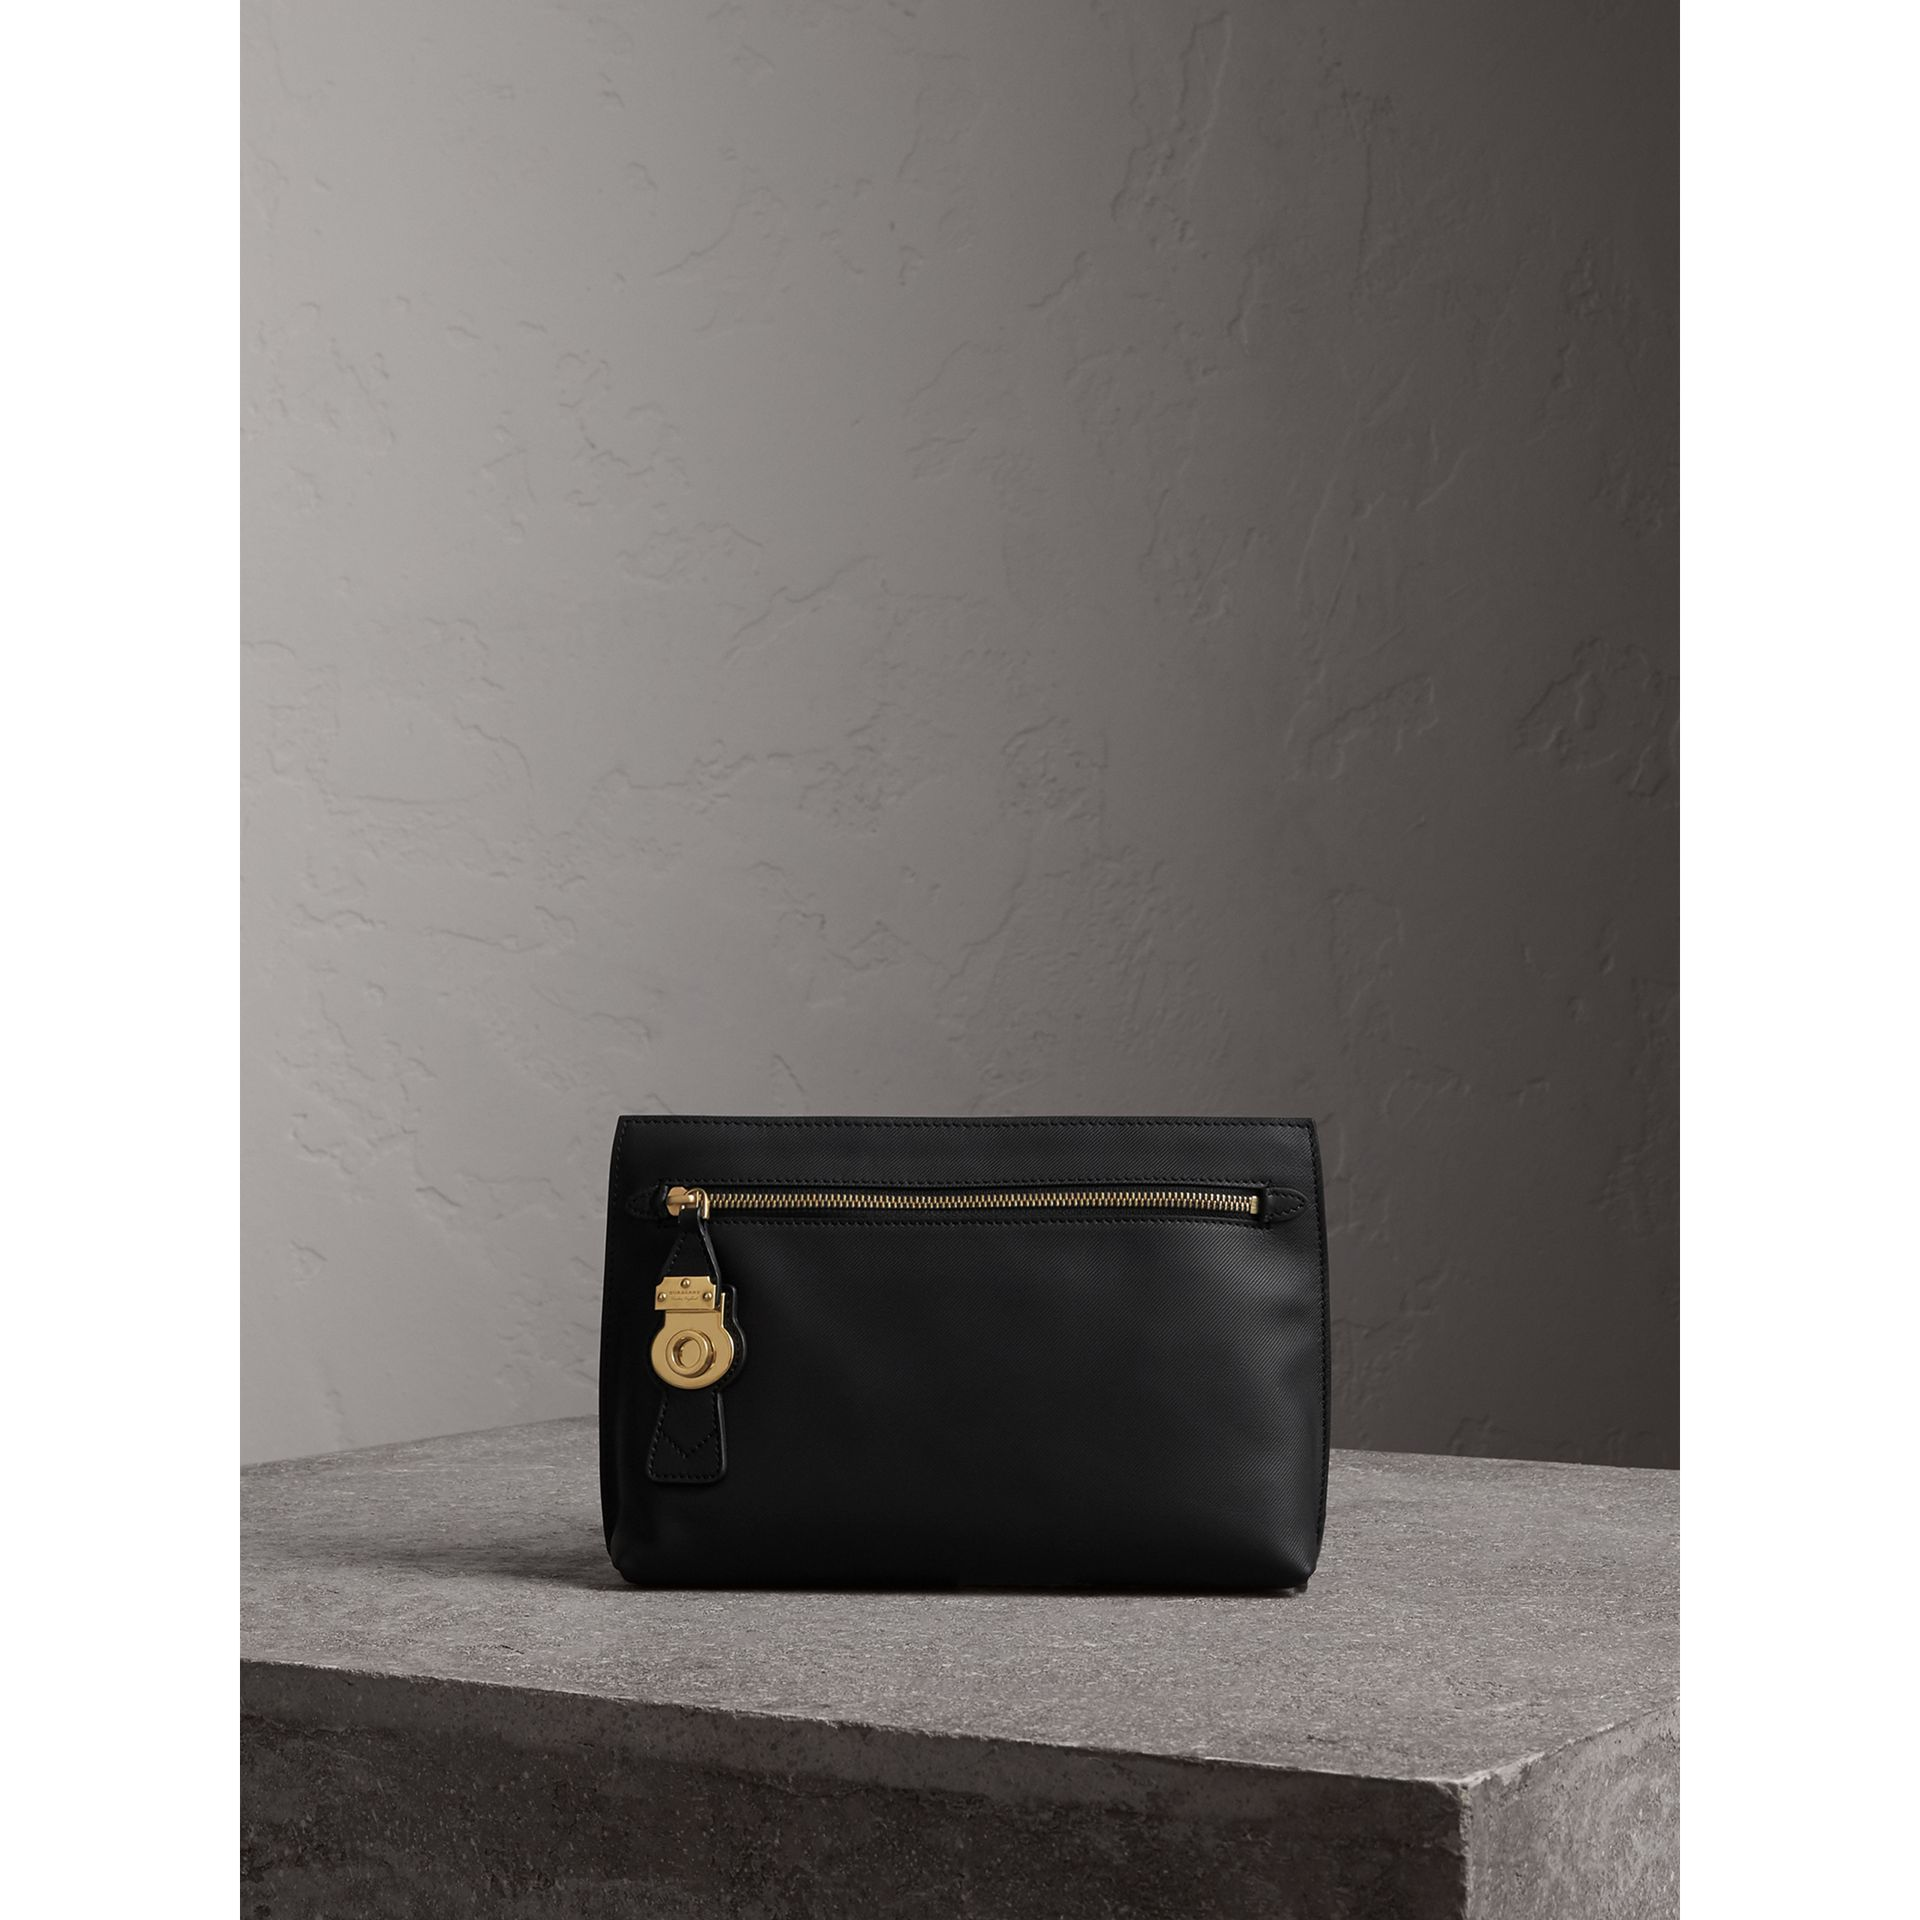 Trench Leather Wristlet Pouch in Black - Women | Burberry Australia - gallery image 1